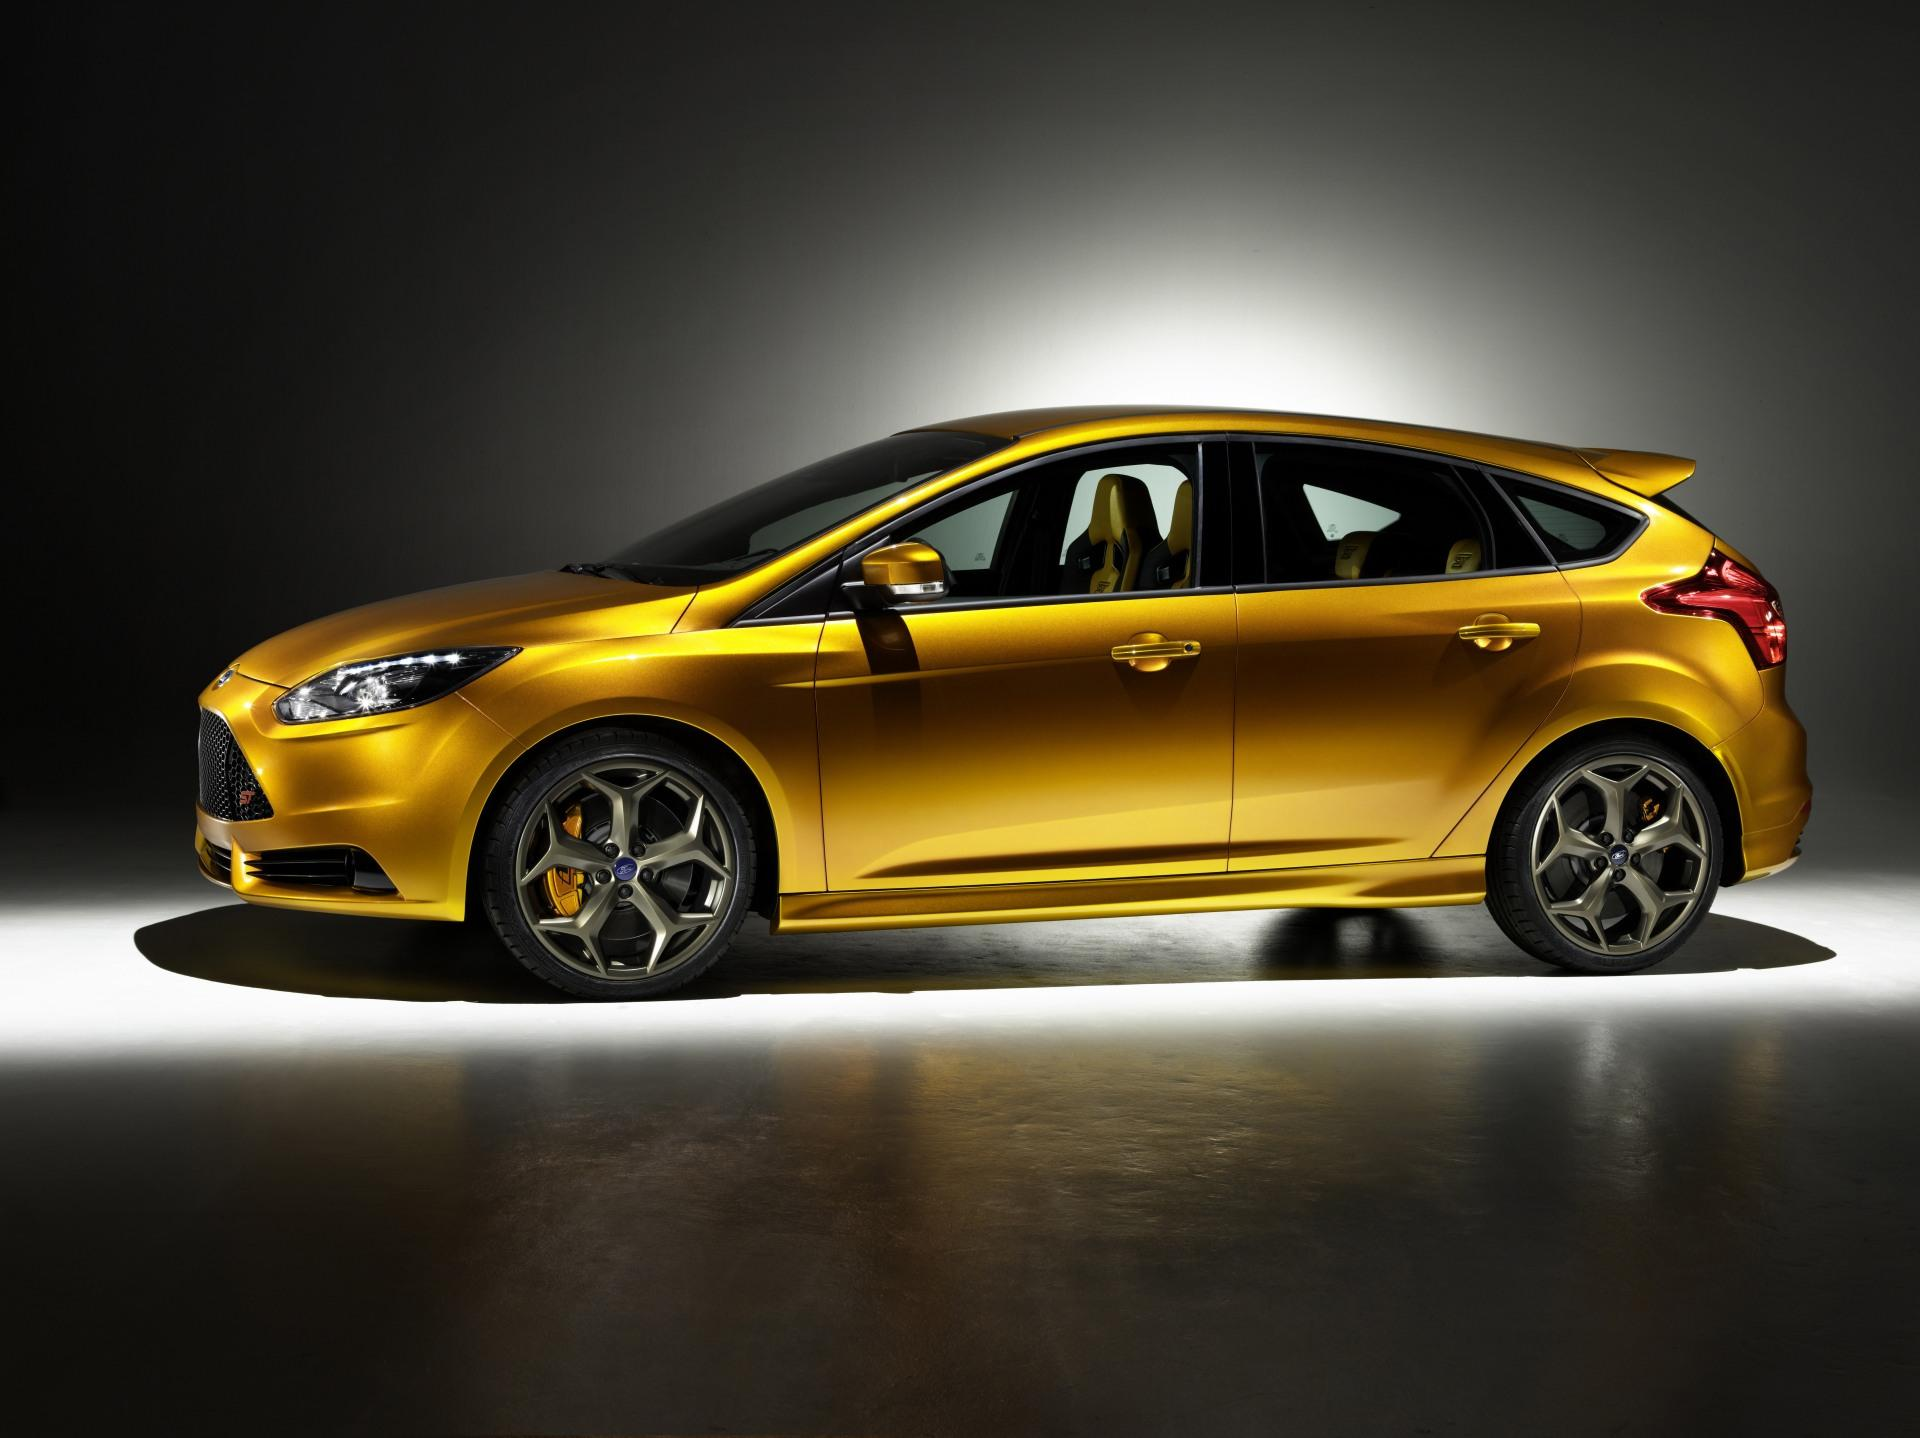 2011 Ford Focus St Wallpapers Hd Drivespark